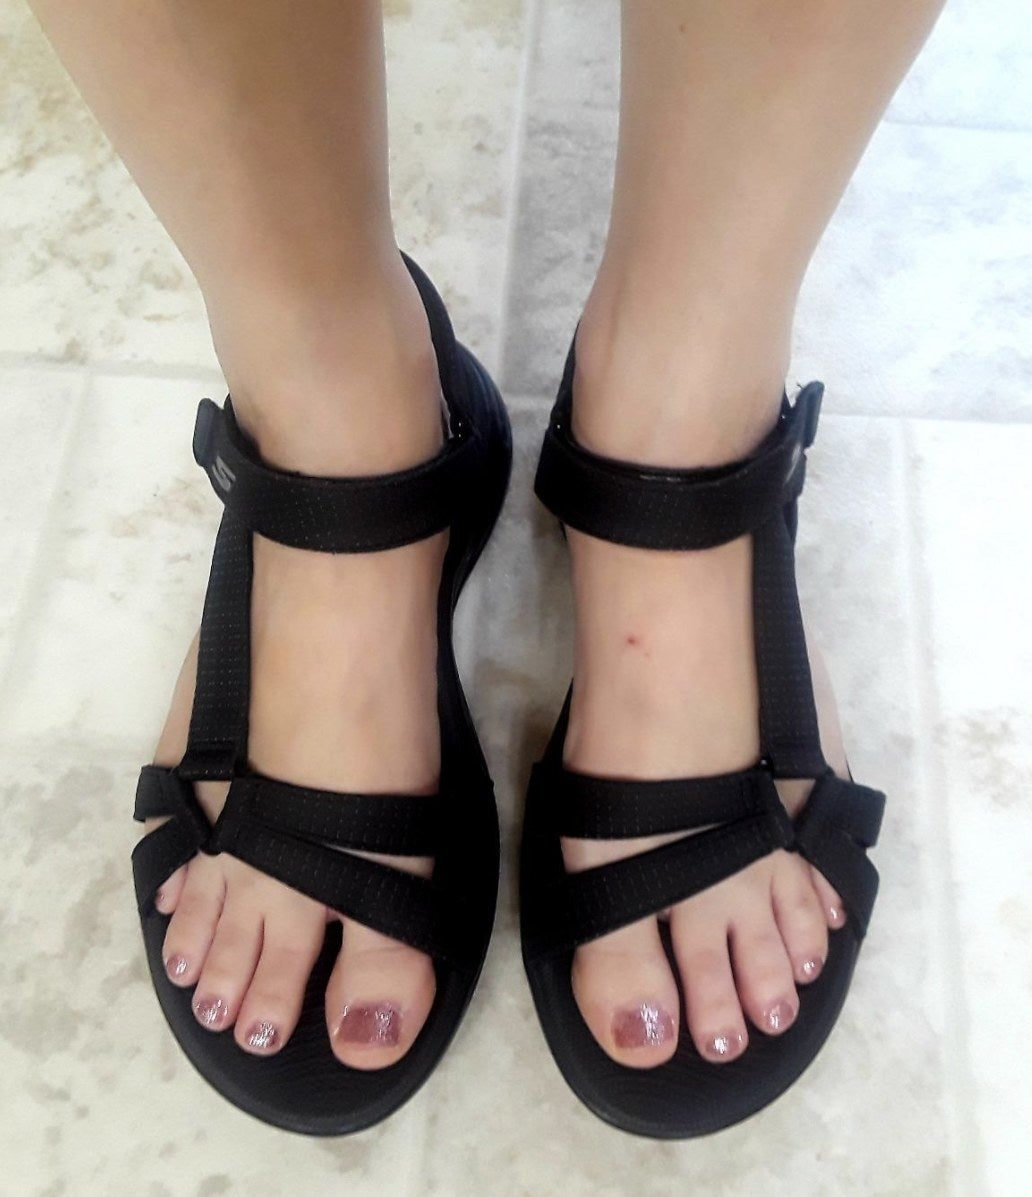 a reviewer wearing the sandals in black